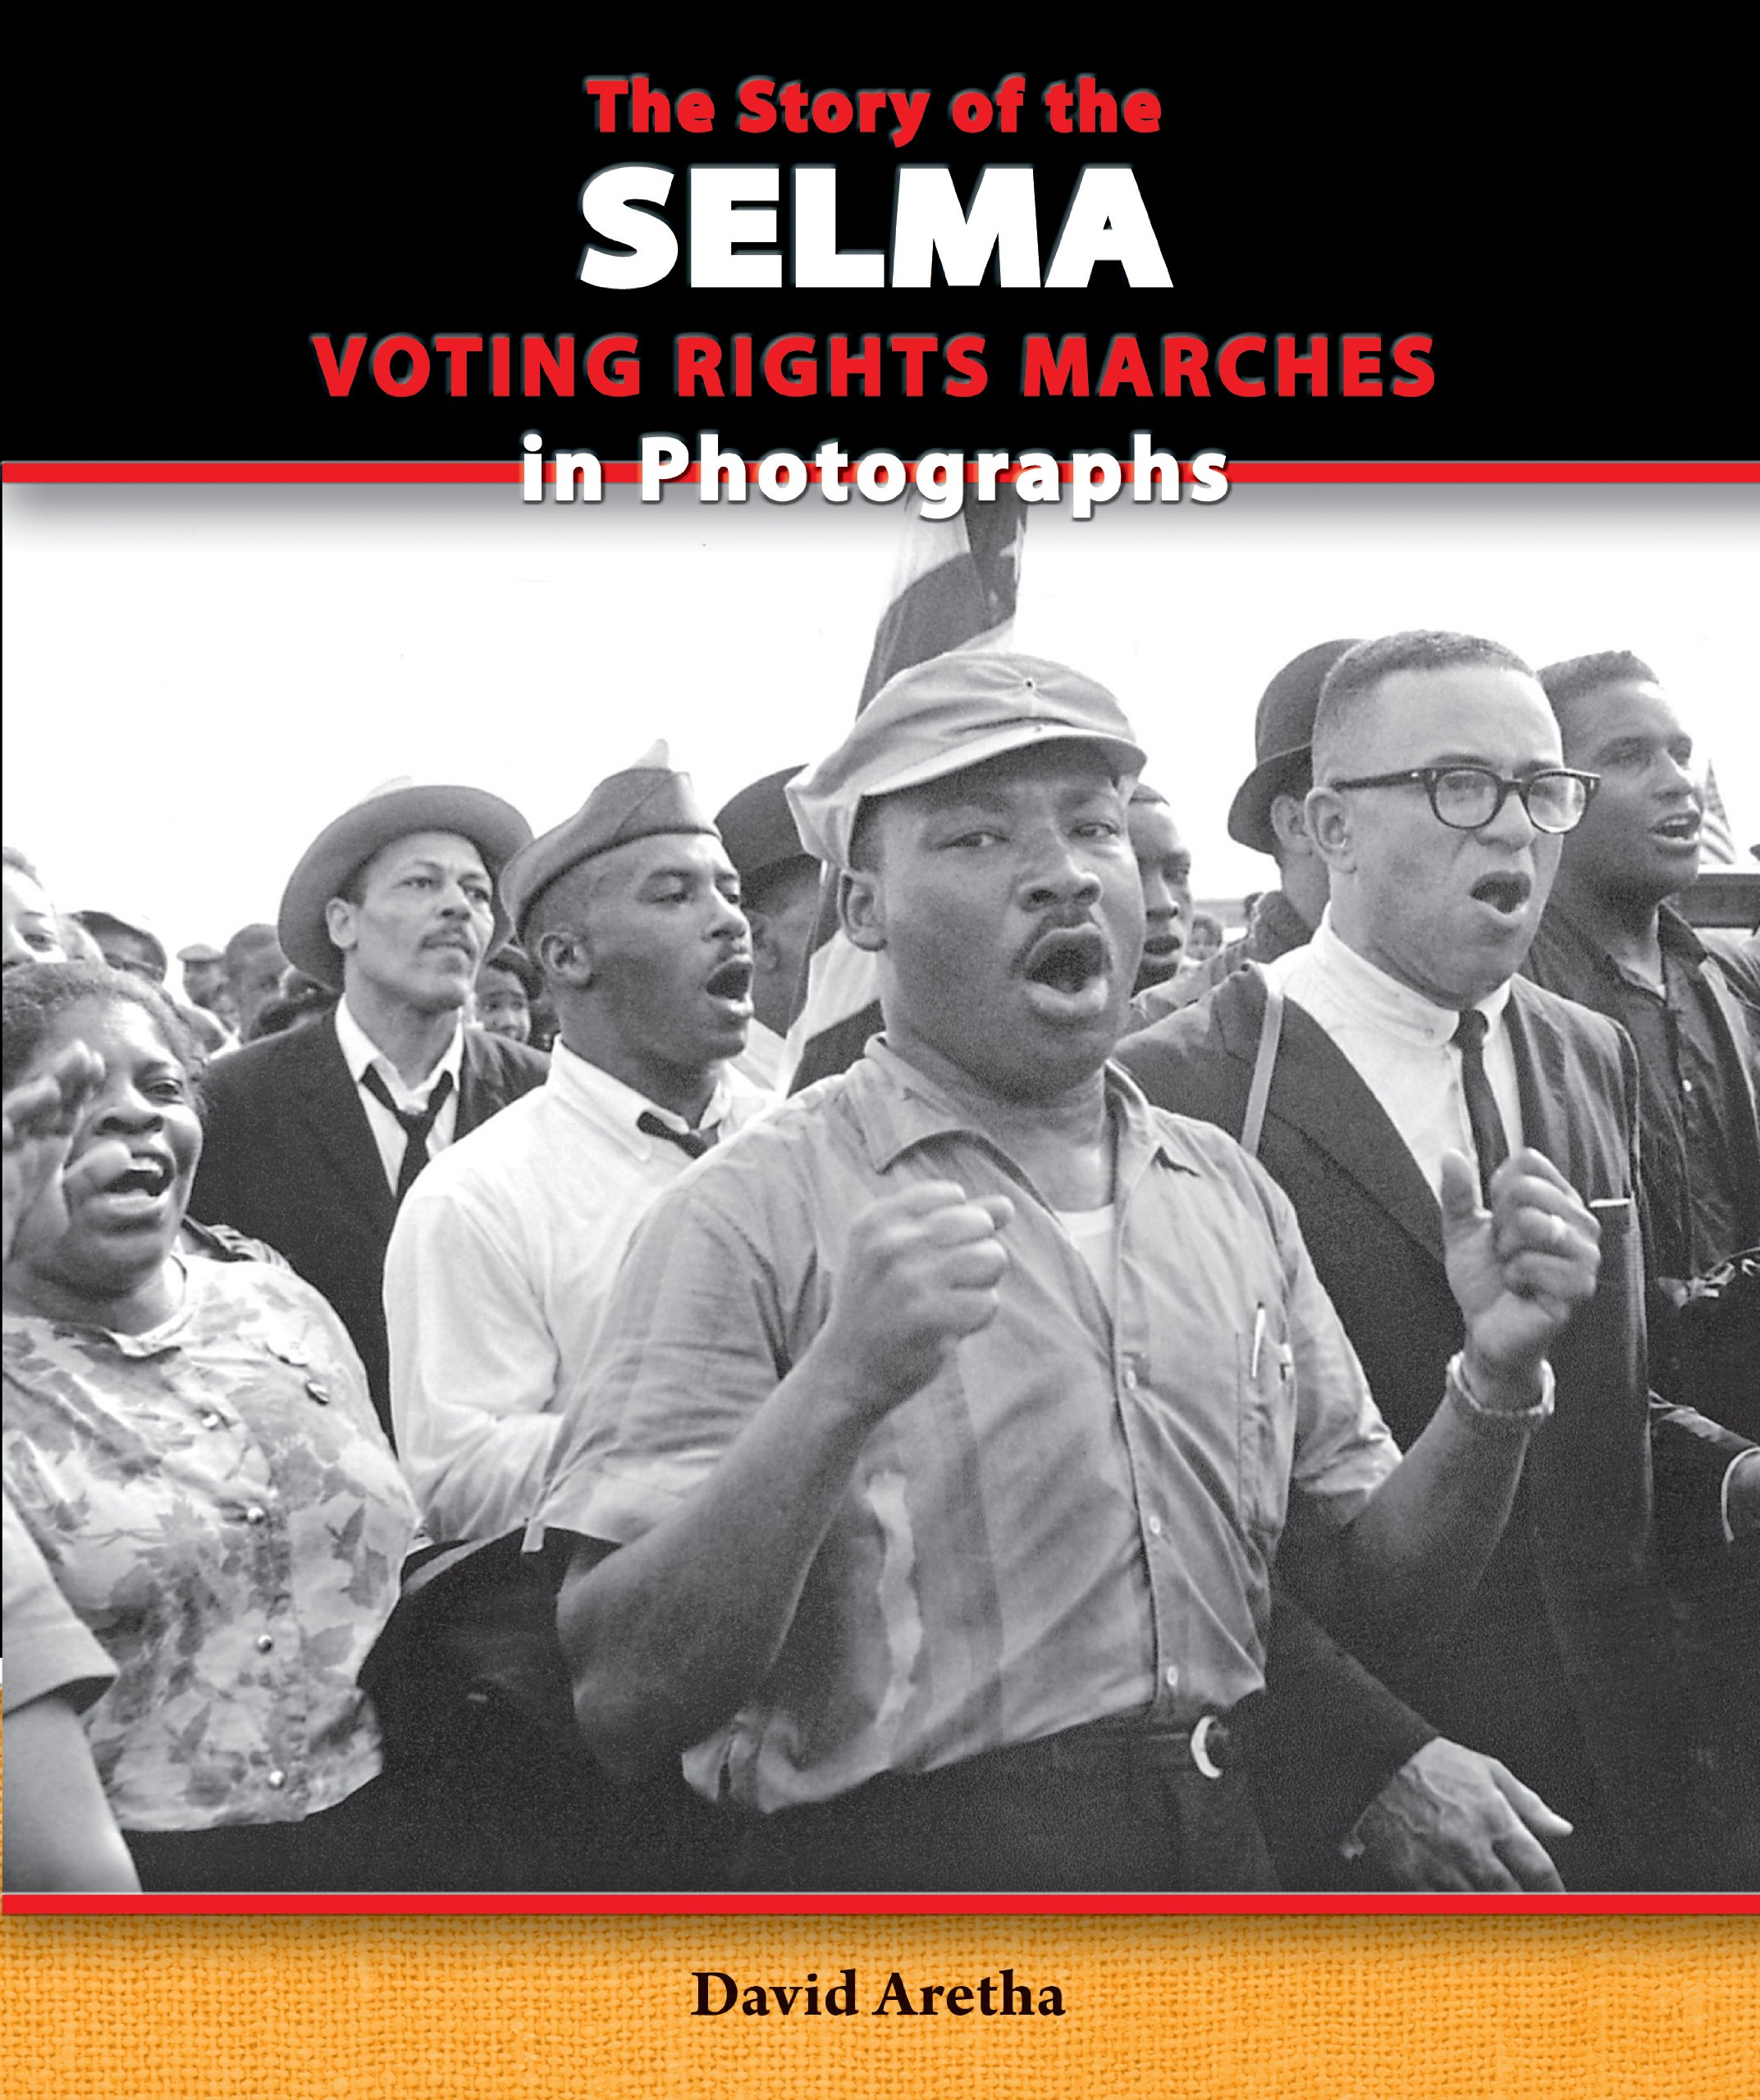 the-story-of-the-selma-voting-rights-marches-in-photographs-the-story-of-the-civil-rights-movement-in-photographs